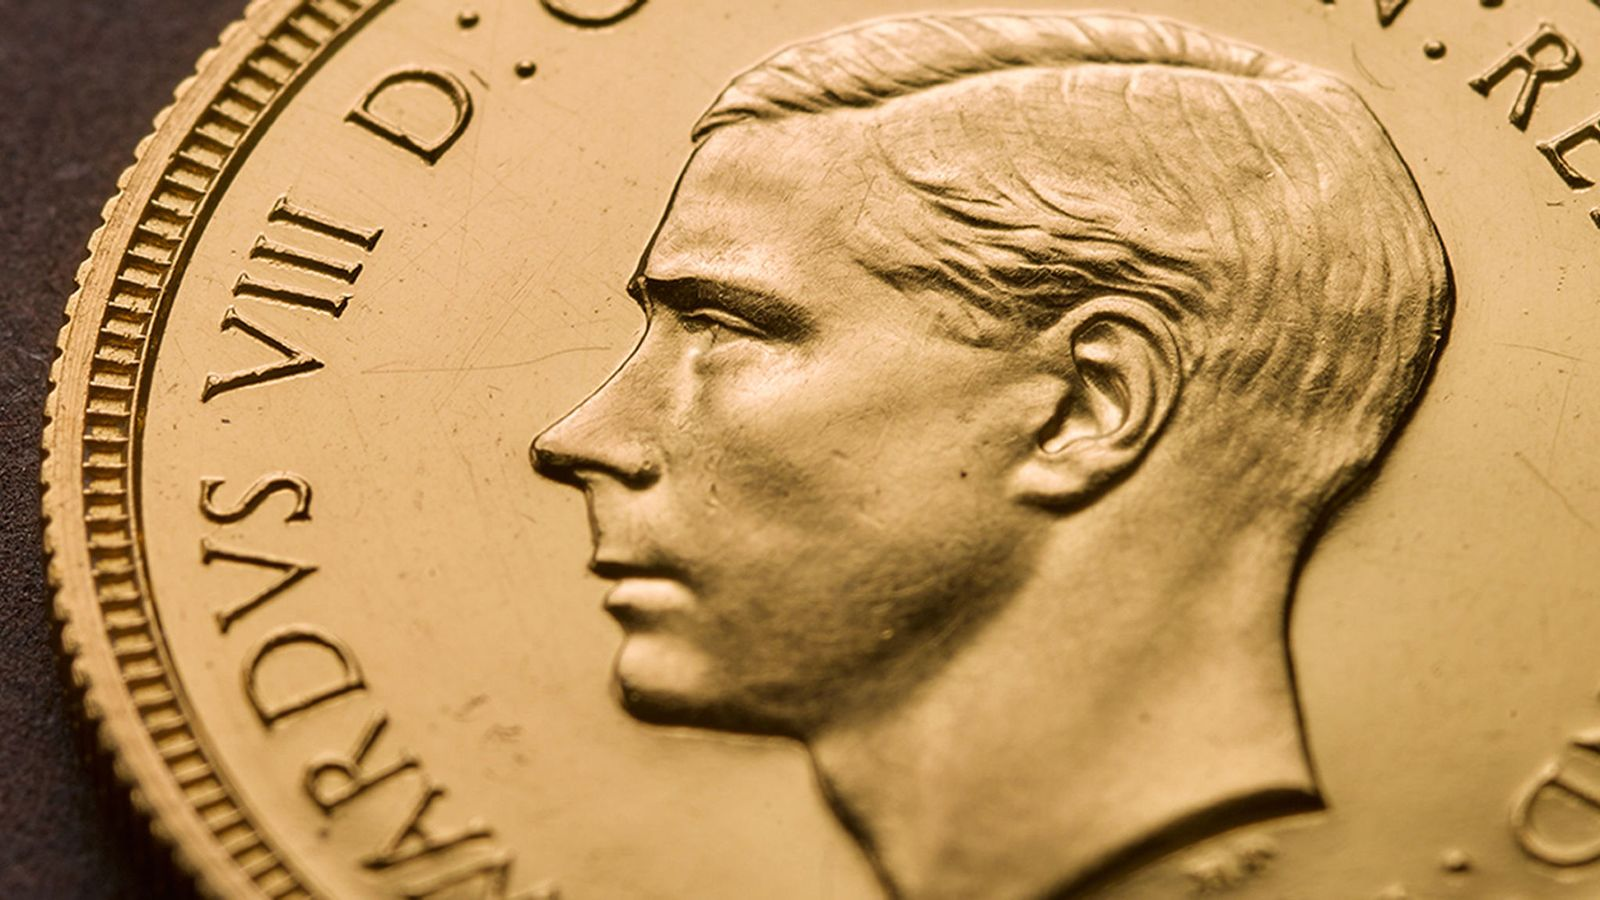 Rare Coin Featuring UK King Edward VIII Bought